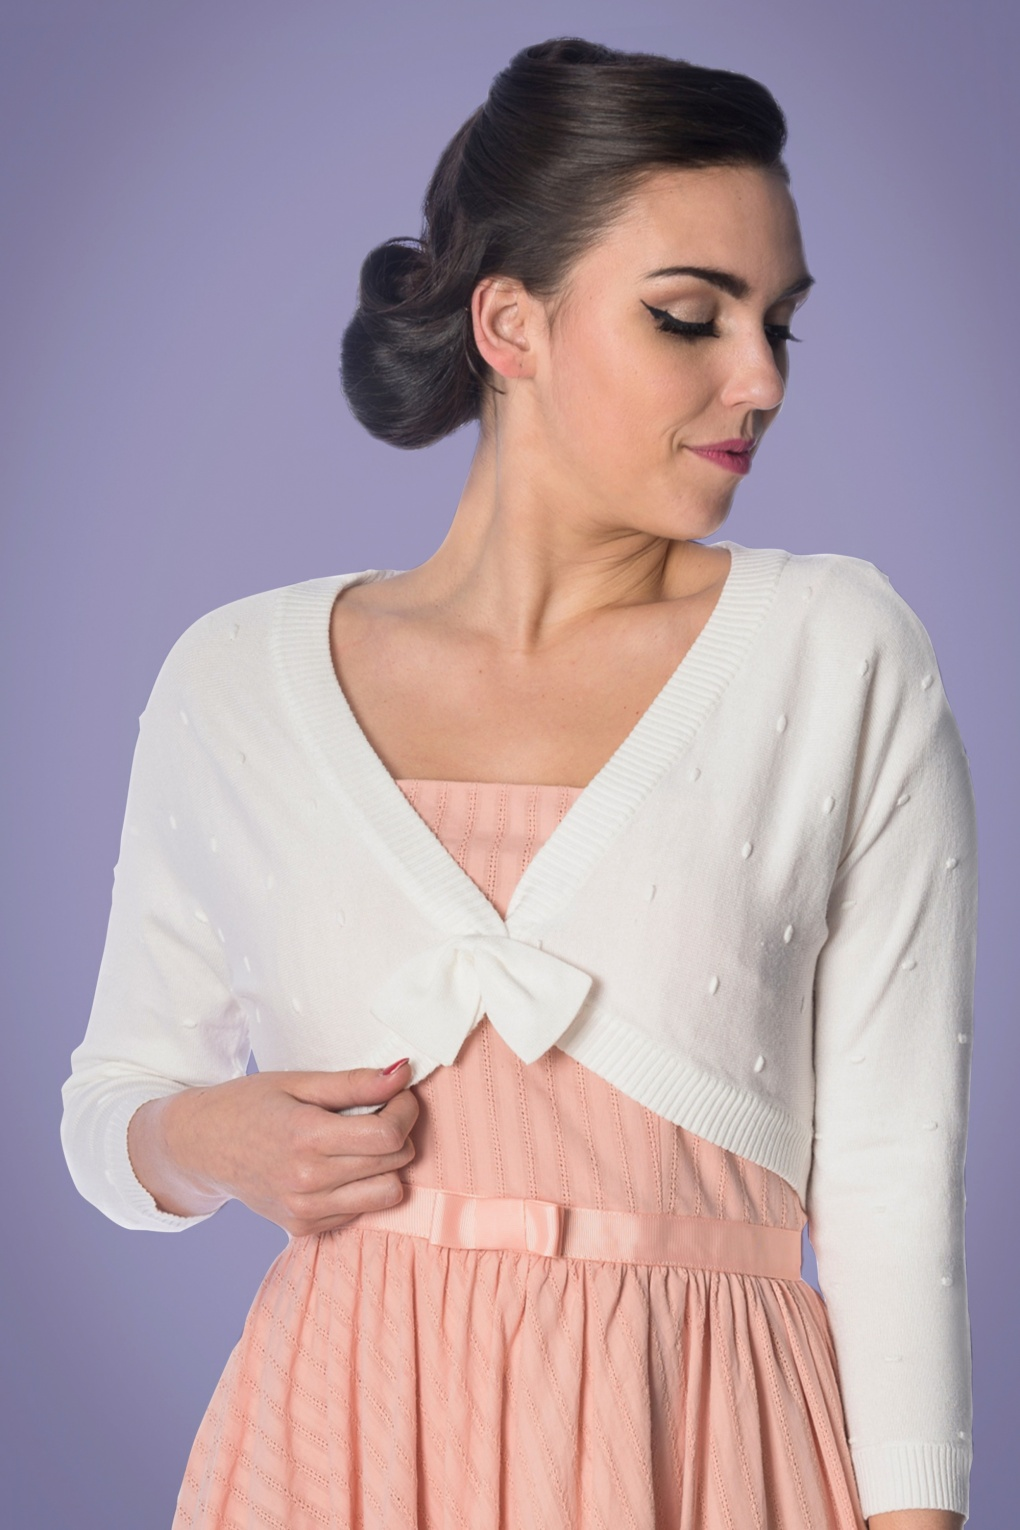 Vintage Sweaters: Cable Knit, Fair Isle Cardigans & Sweaters 50s Popcorn Bolero in Ivory White £33.68 AT vintagedancer.com